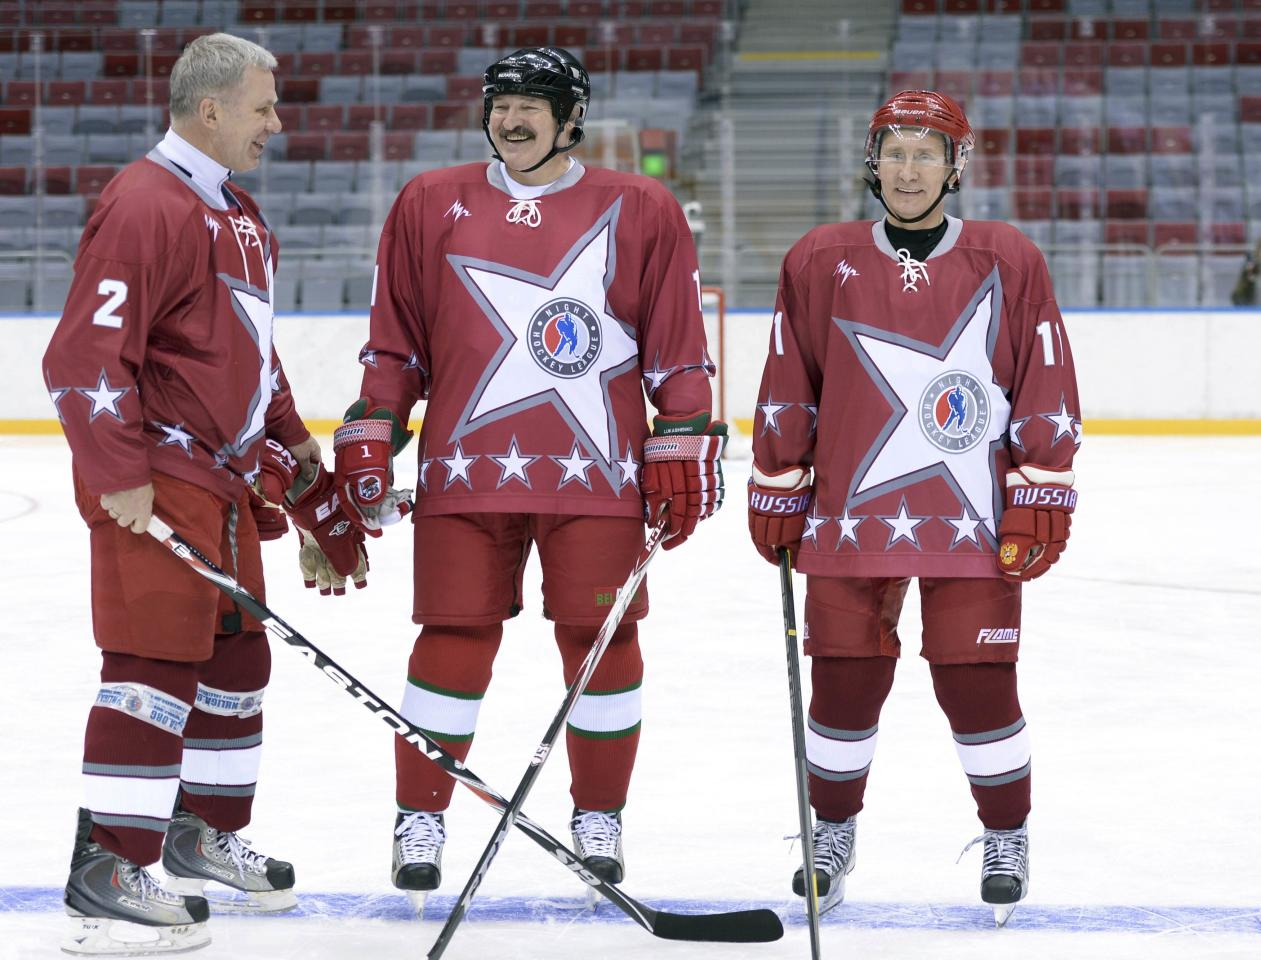 Russian President Putin, his Belarussian counterpart Lukashenko and retired Russian ice hockey player Fetisov take part in a friendly ice hockey match in the Bolshoi Ice Palace near Sochi